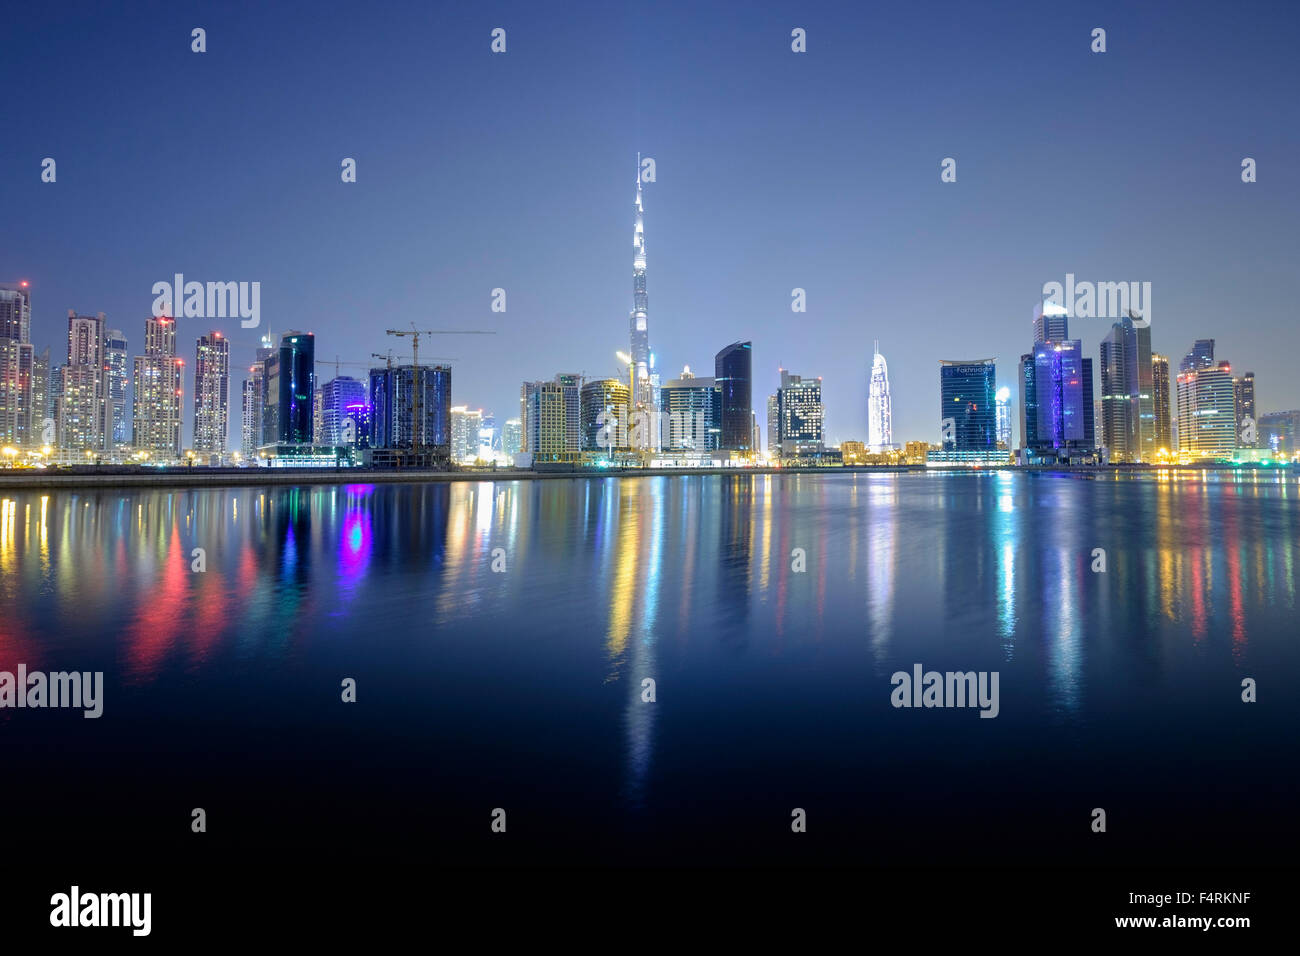 Night view of Burj Khalifa and Creek at new Business Bay district of  Dubai United Arab Emirates - Stock Image